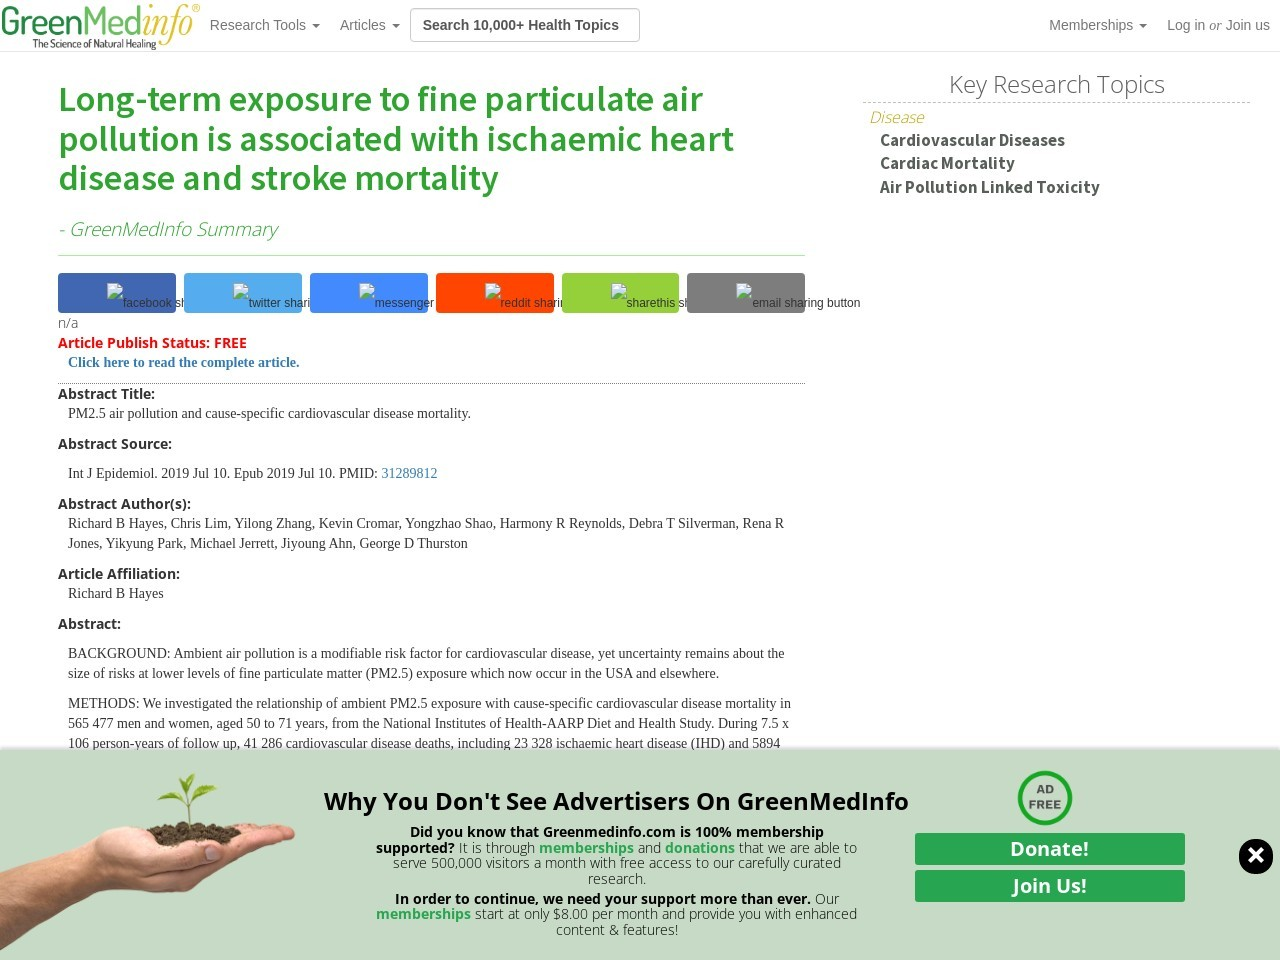 Long-term exposure to fine particulate air pollution is associated with ischaemic heart disease and stroke mortality